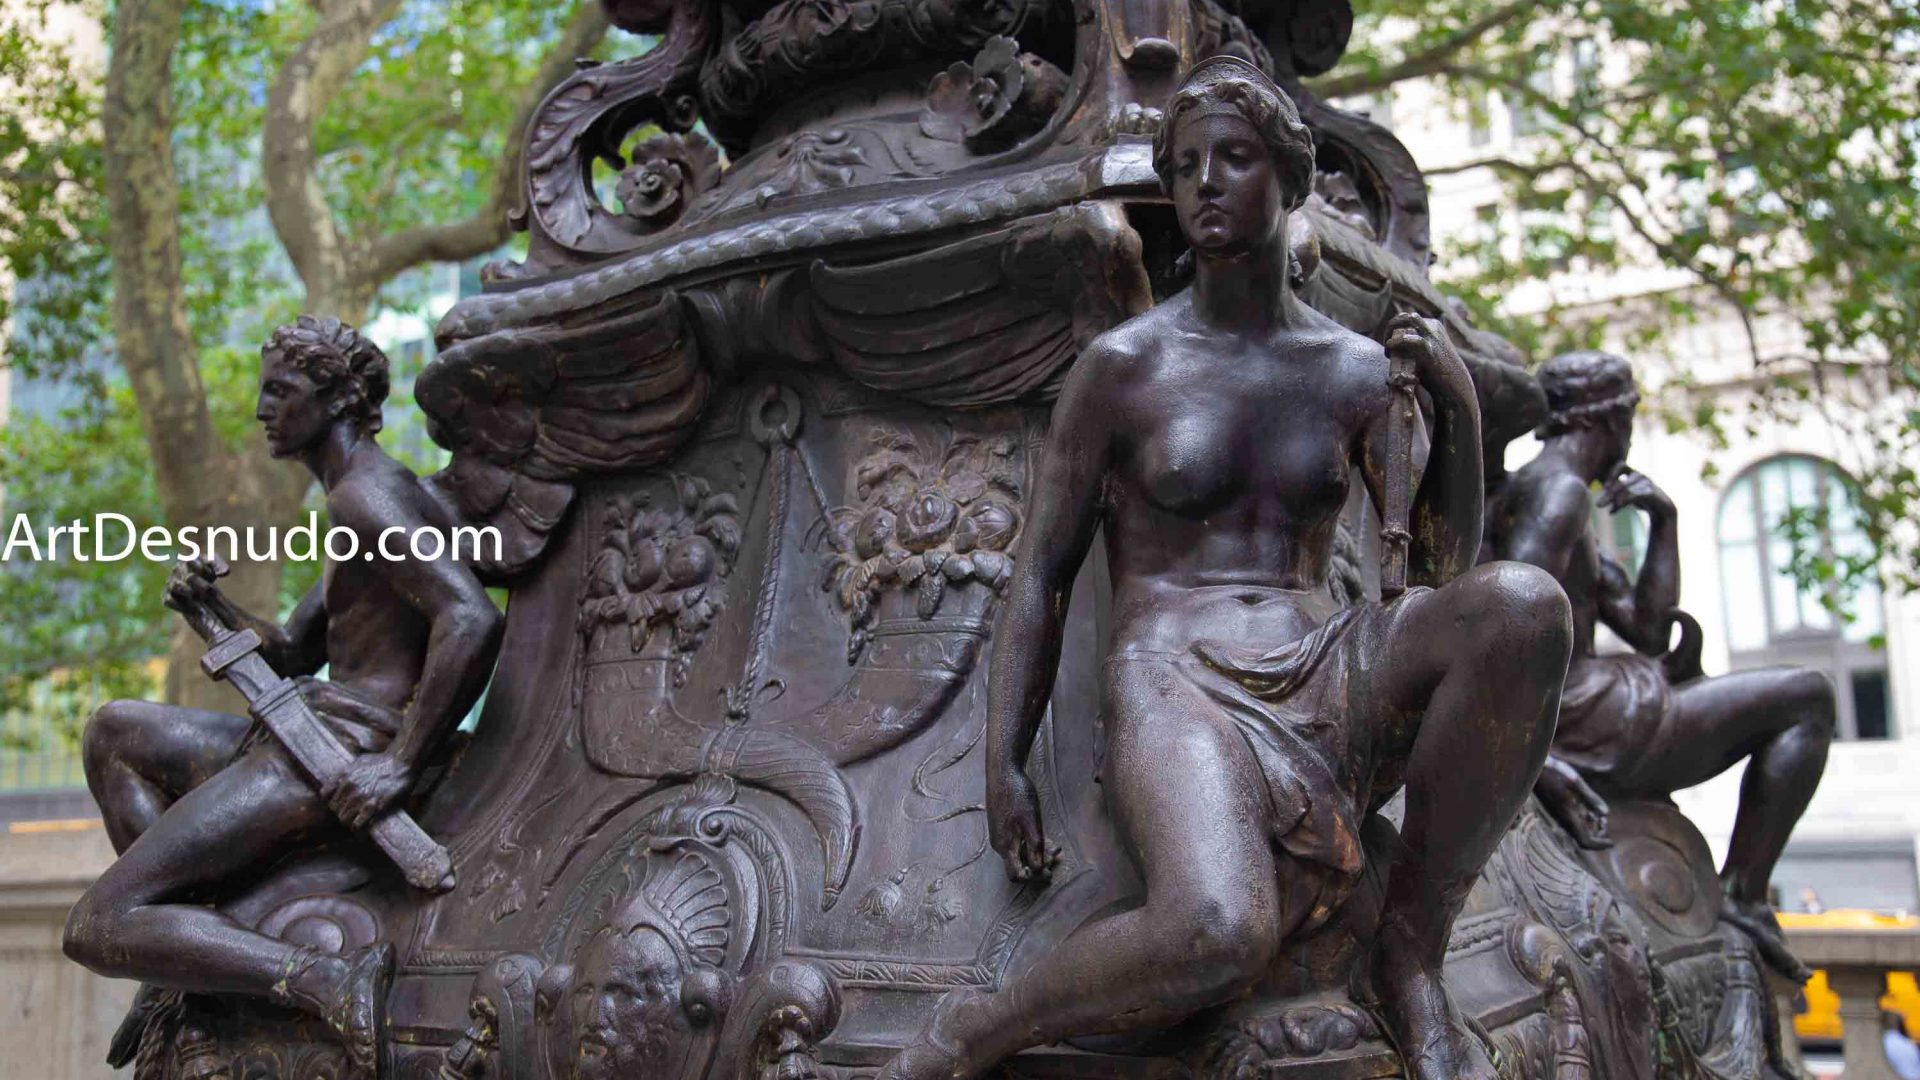 Saturday, September 7, 2019 - Female and male nude sculptures sculpted by Raffaele Menconi and cast at Tiffany Studios. New York Public Library Main Branch. Manhattan, New York City.